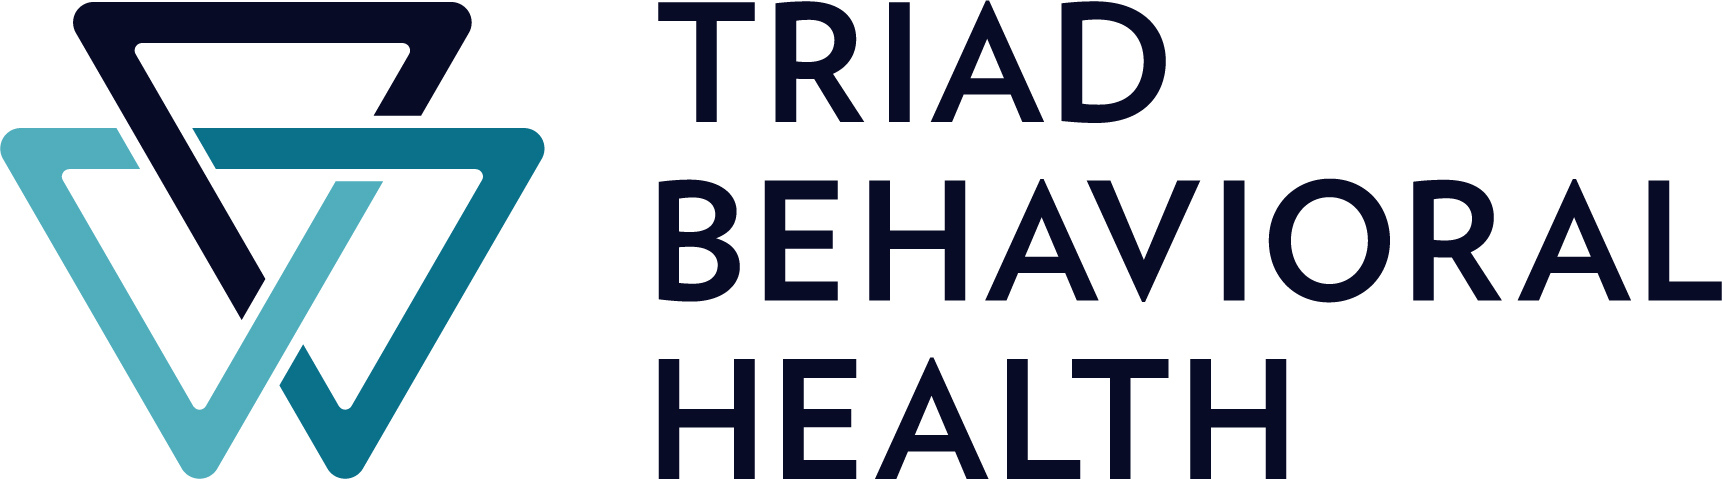 Triad Behavioral Health Logo